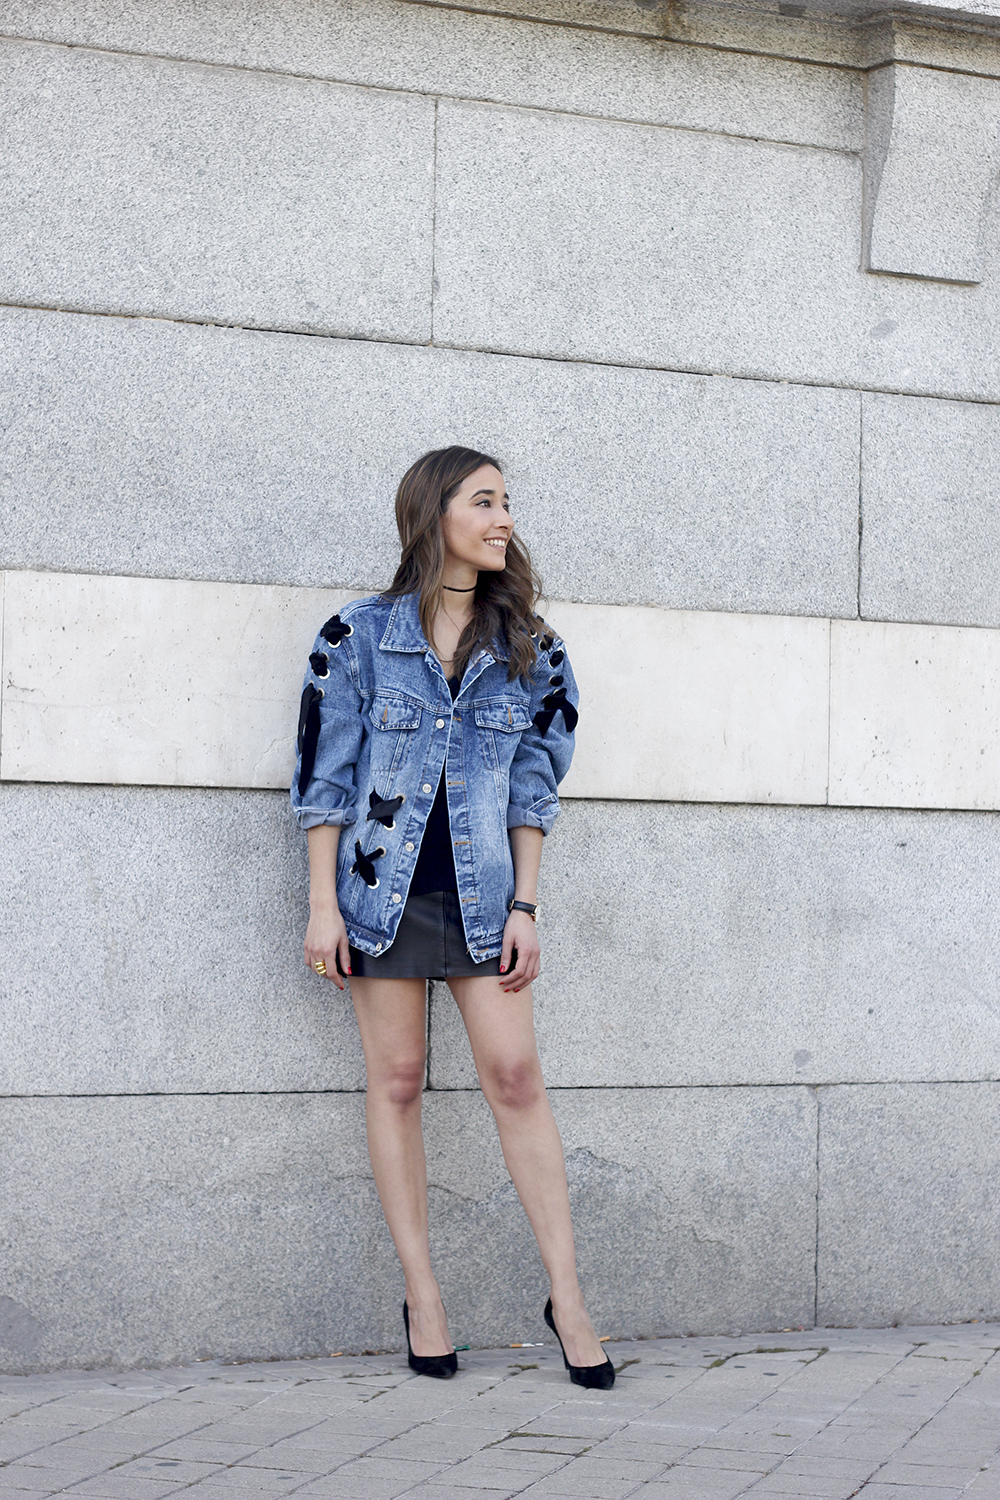 denim jacket leather skirt black heels outfit style fashion summer07